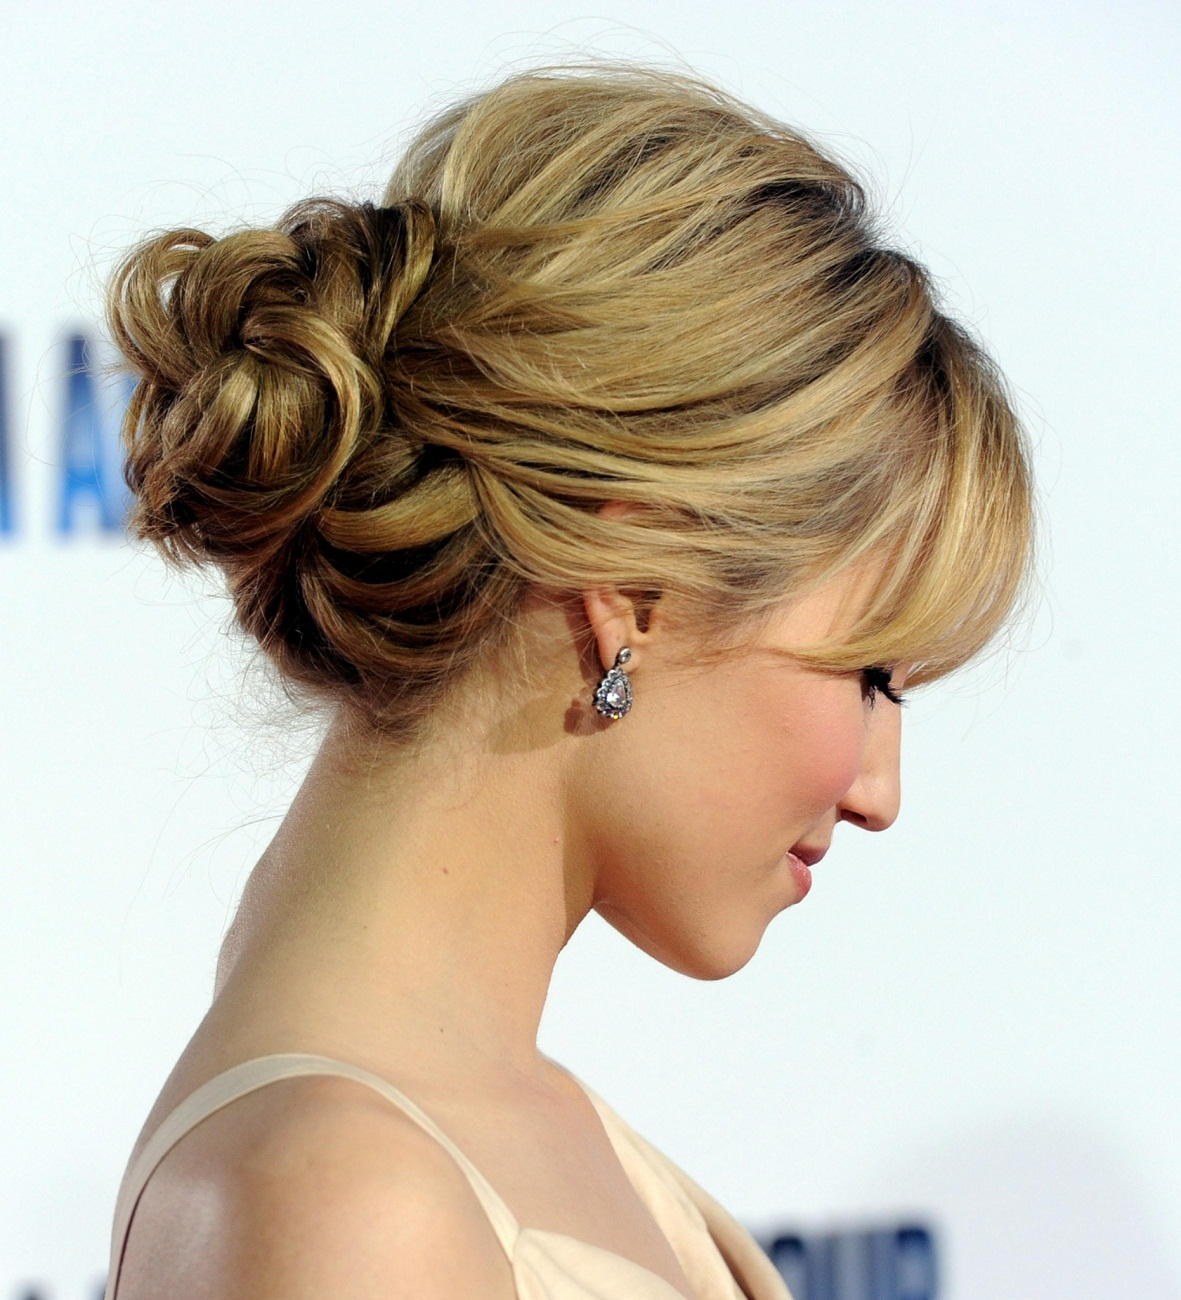 Popular Hairstyle For The Prom 2015 2016 Short Hairstyles For Woman